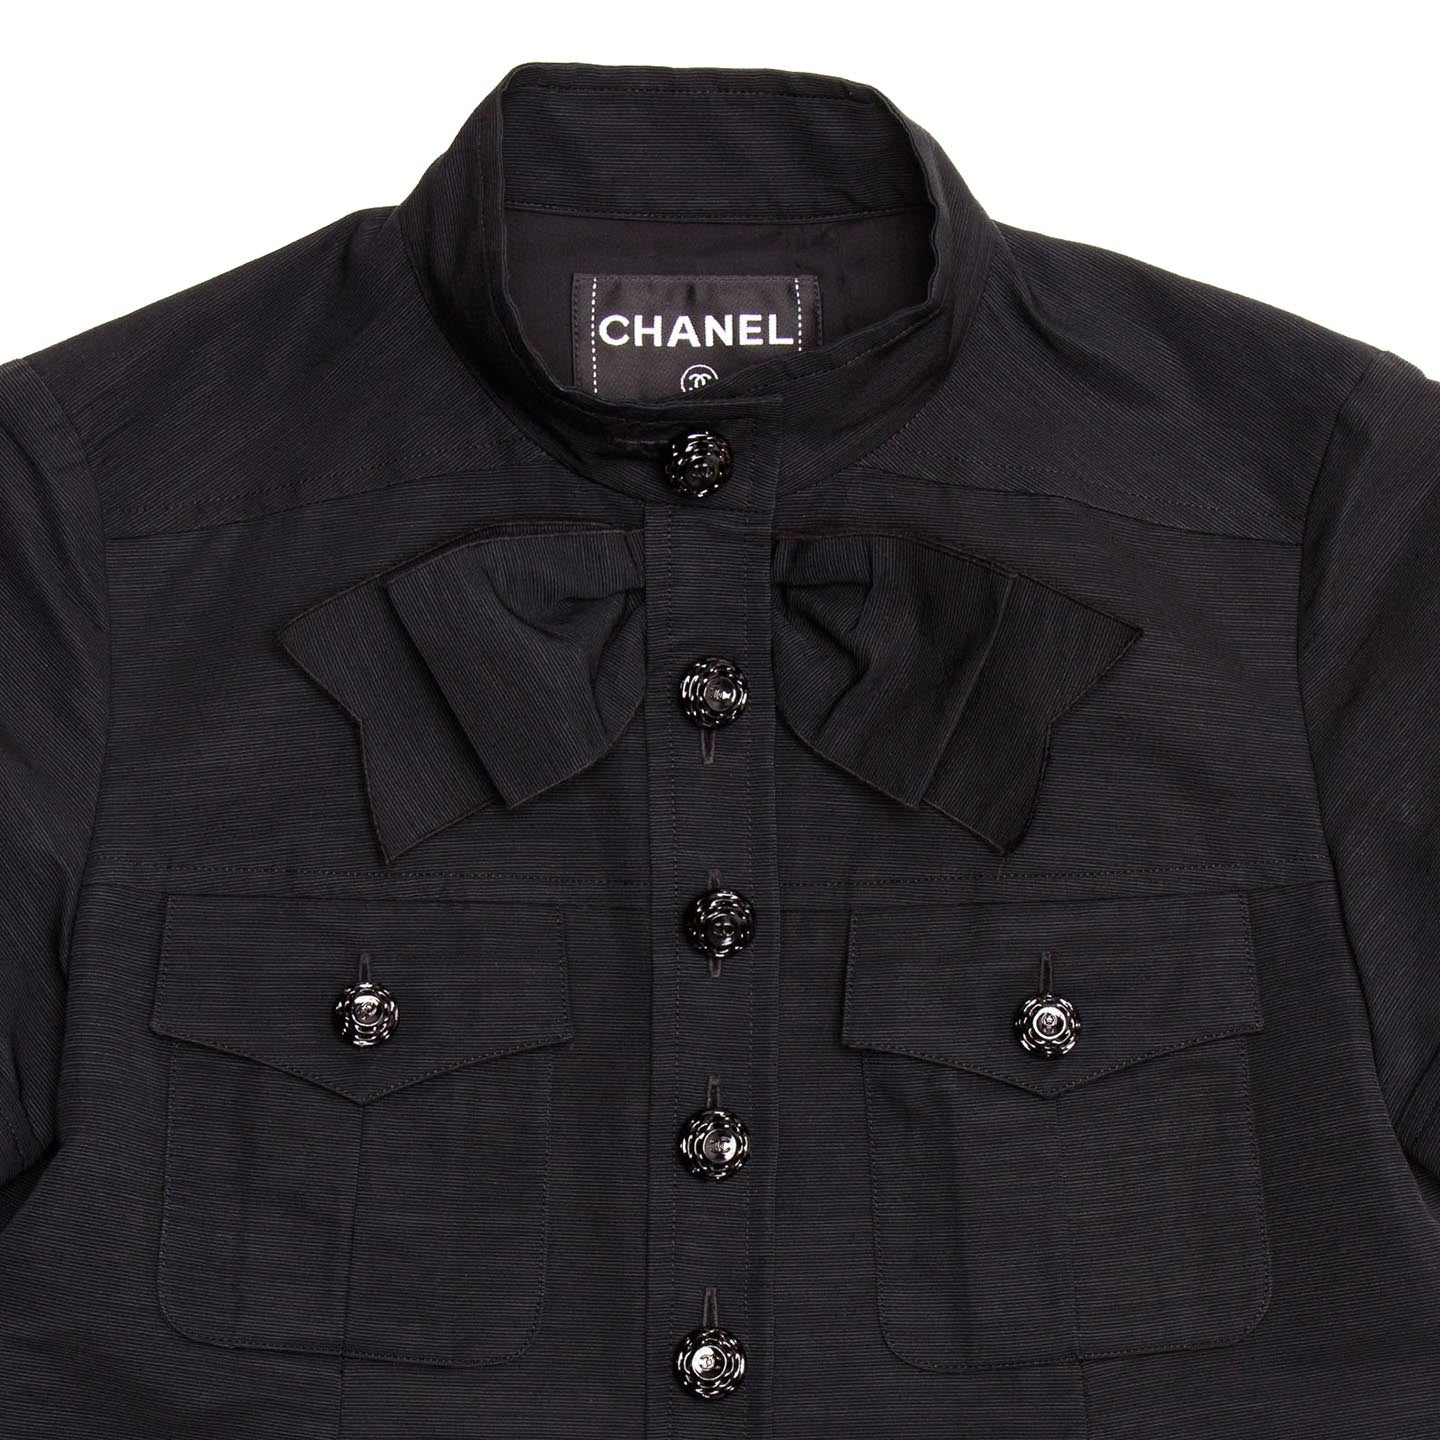 Chanel Black Cotton Top With Bow, size 38 (French)